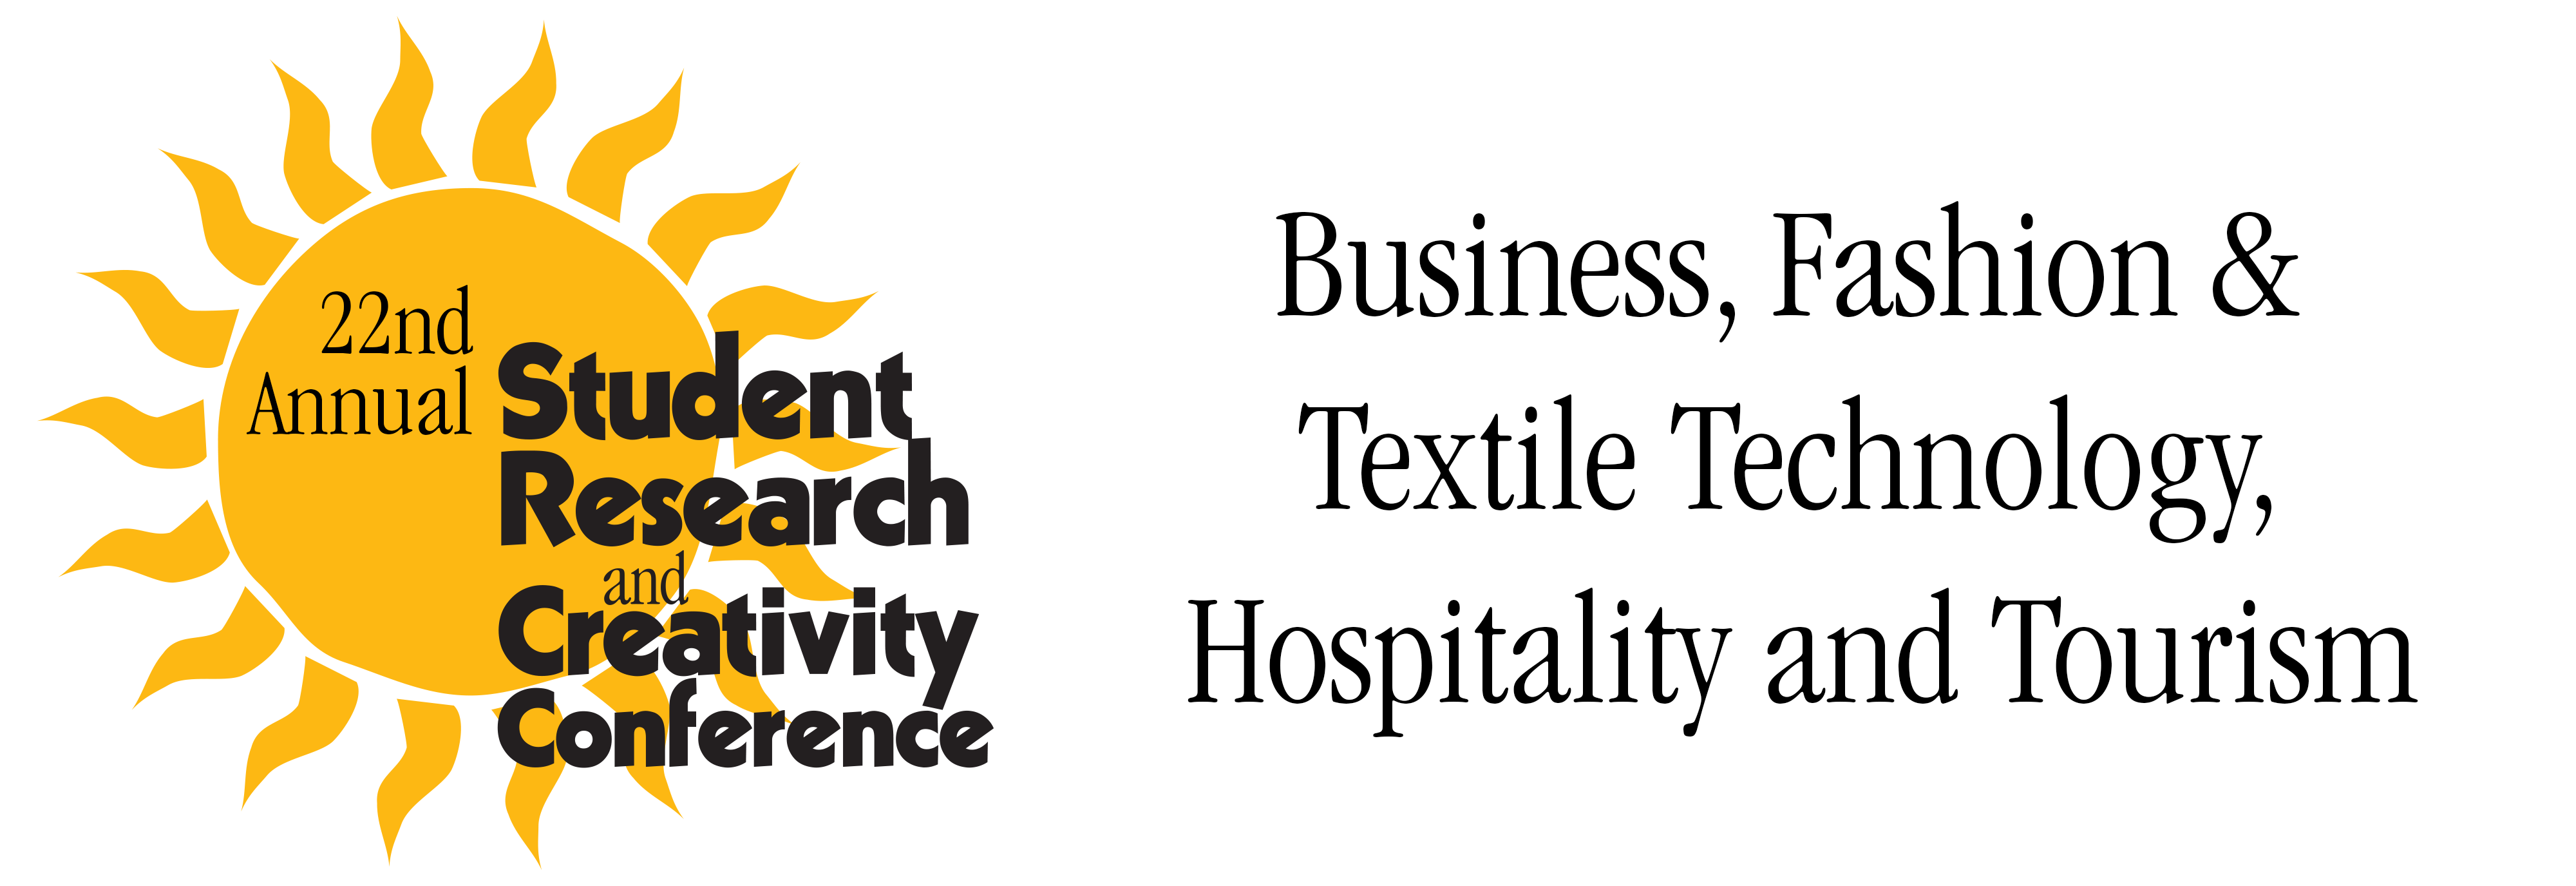 Business, Fashion & Textile Technology, Hospitality and Tourism